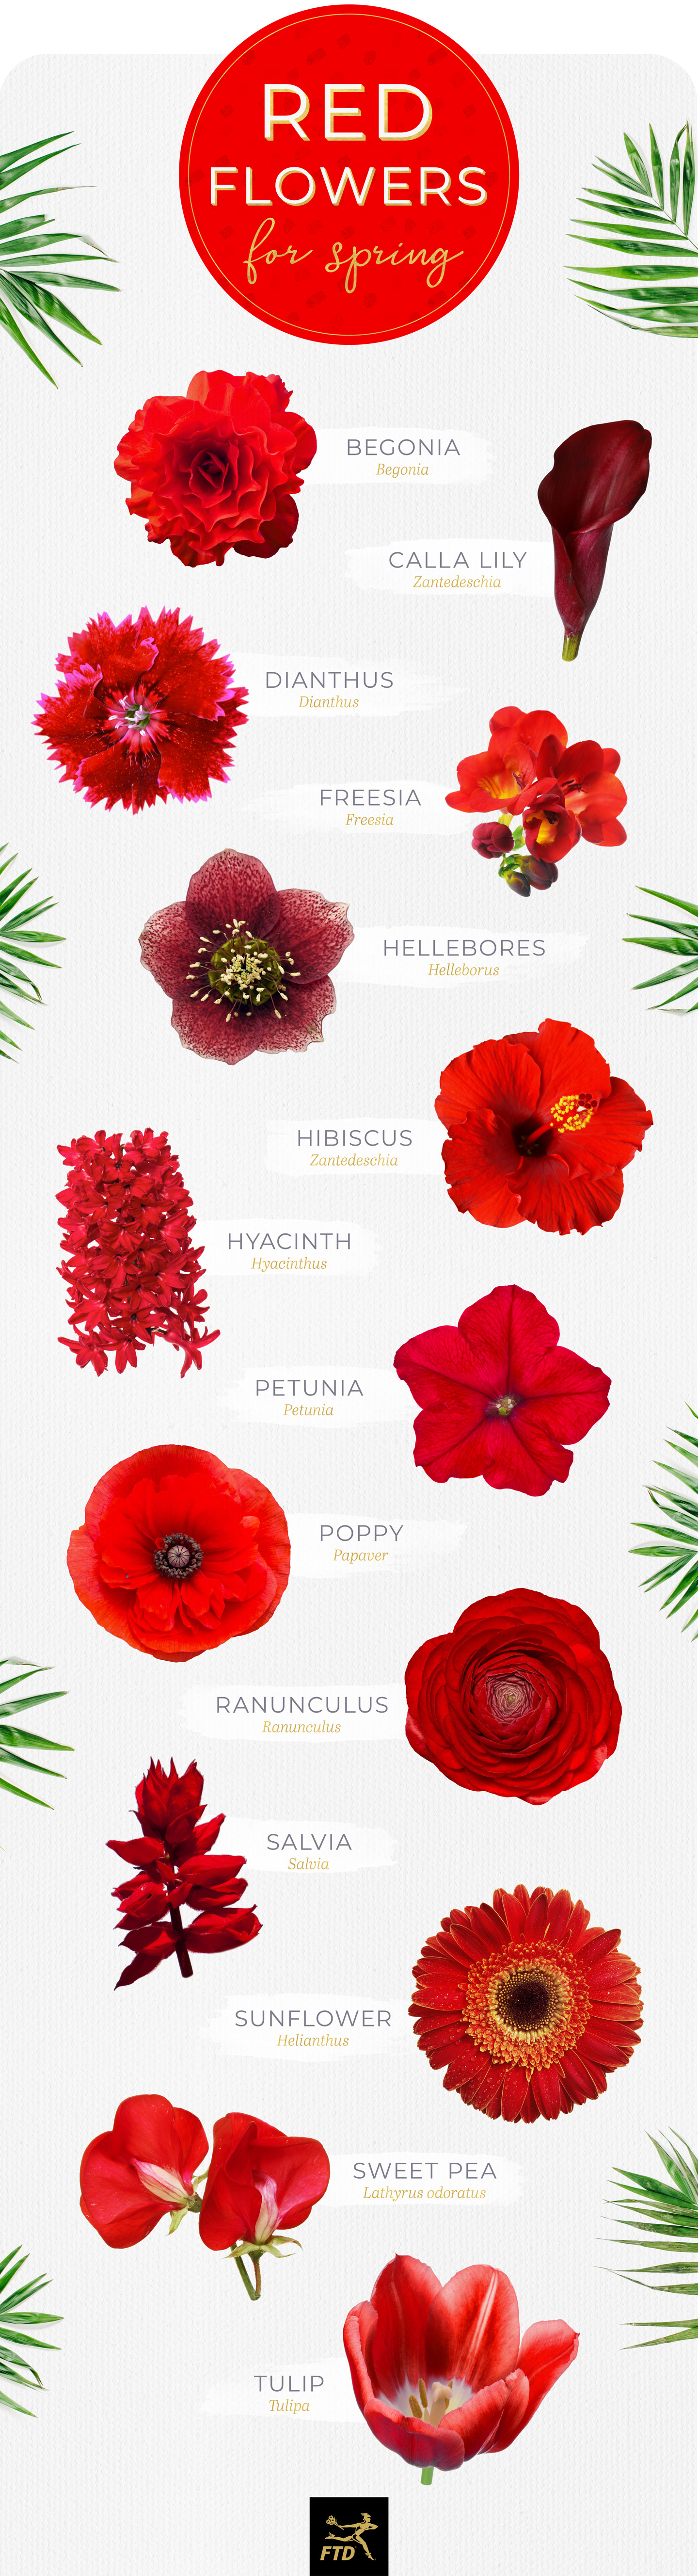 banner transparent download  types of flowers. Red flower